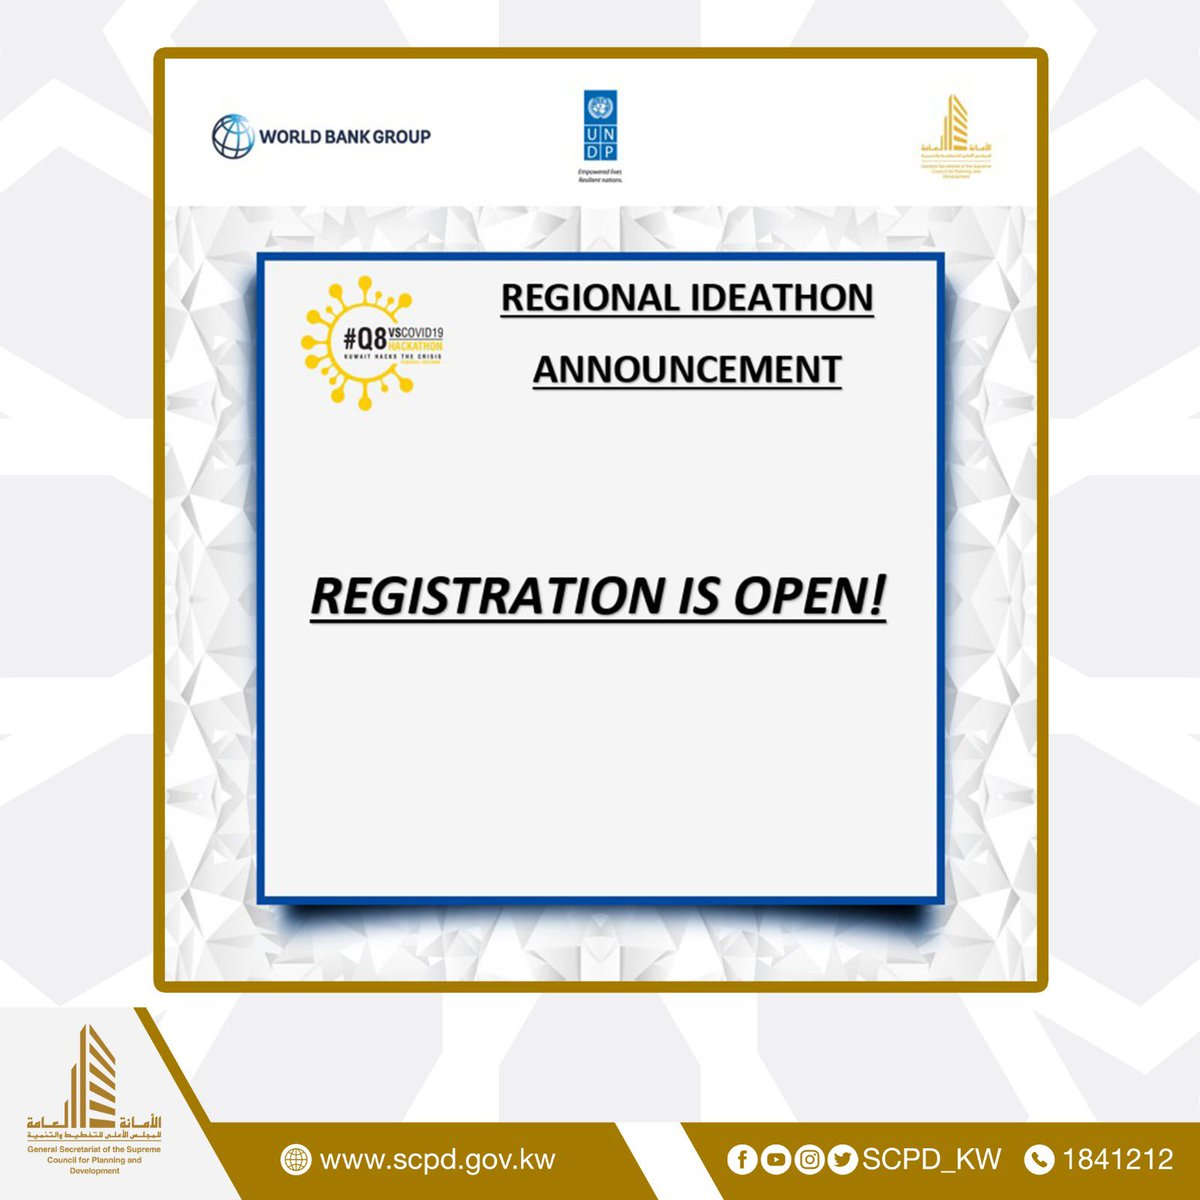 REGISTRATION OPEN – for the Regional Ideathon!  Registration link: https://t.co/reAxQnd1wL  Winning teams will receive awards!  1st place: $15,000  2nd: $10,000  3rd: $7,000  Registration ends on September 12! https://t.co/8Tbm3YUWih